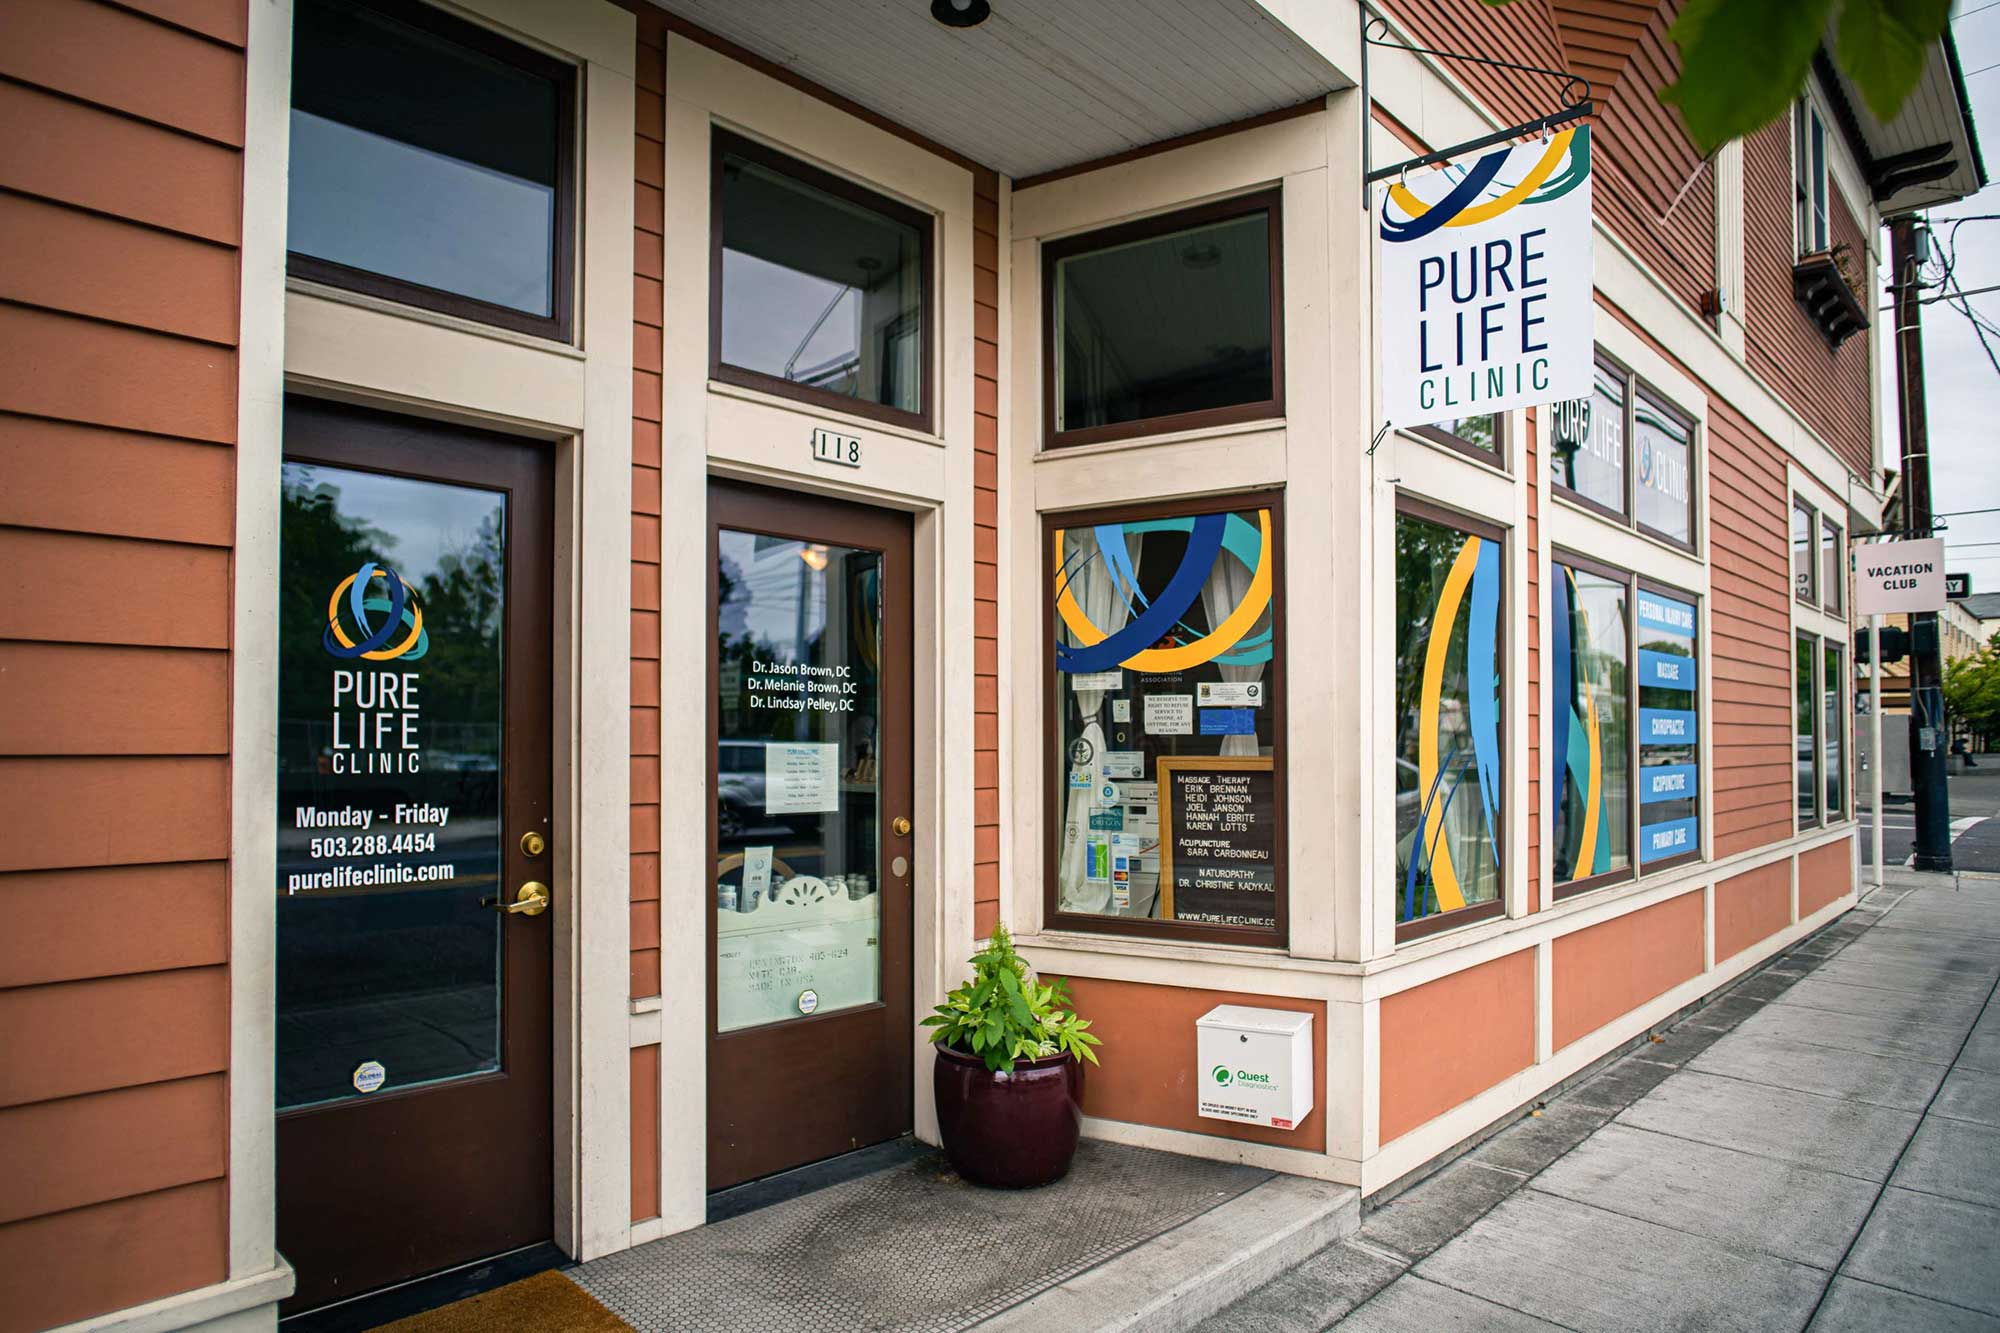 View of the Pure Life Clinic's front door and window